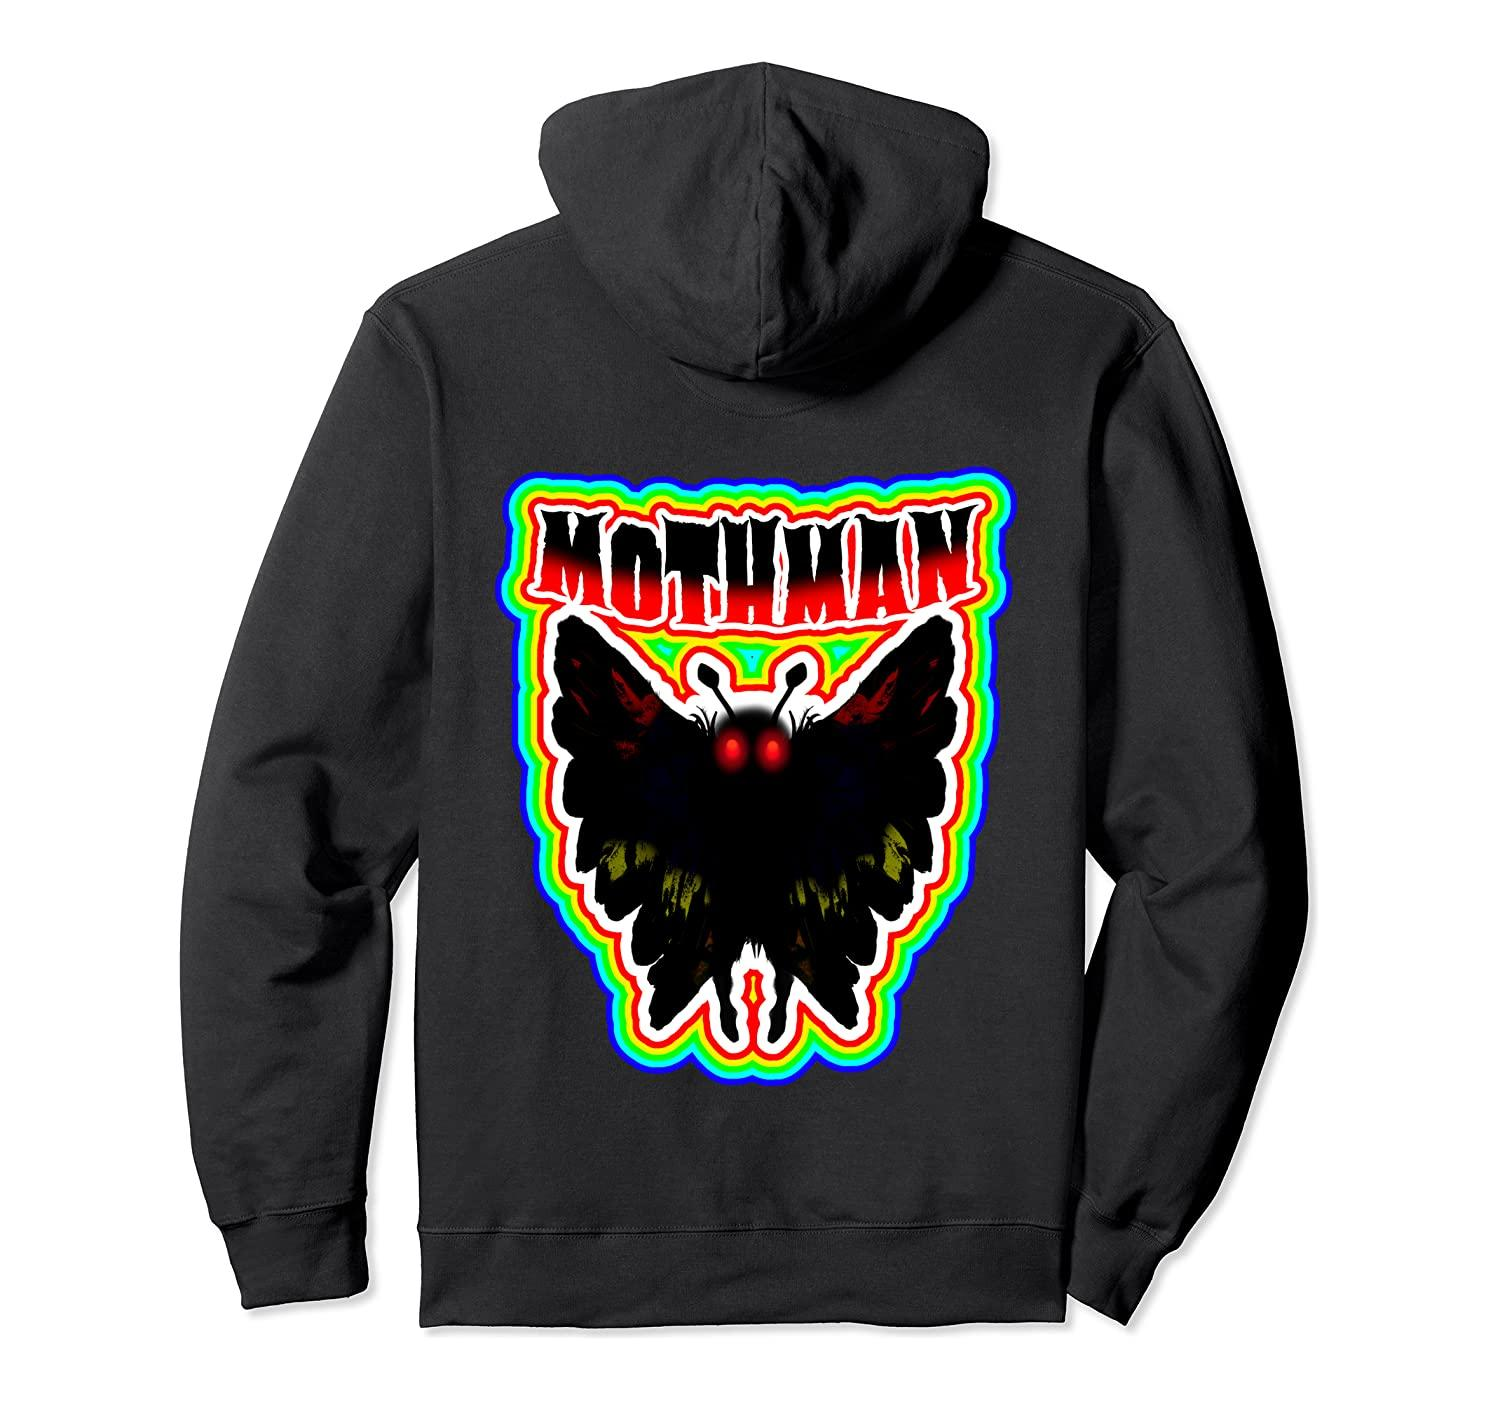 Bunte Vintage Retro Stil Mothman von West Virginia Hoodie Unisex S-5XL Schwarz / Grau / Navy / Royal Blue / Düster Heather